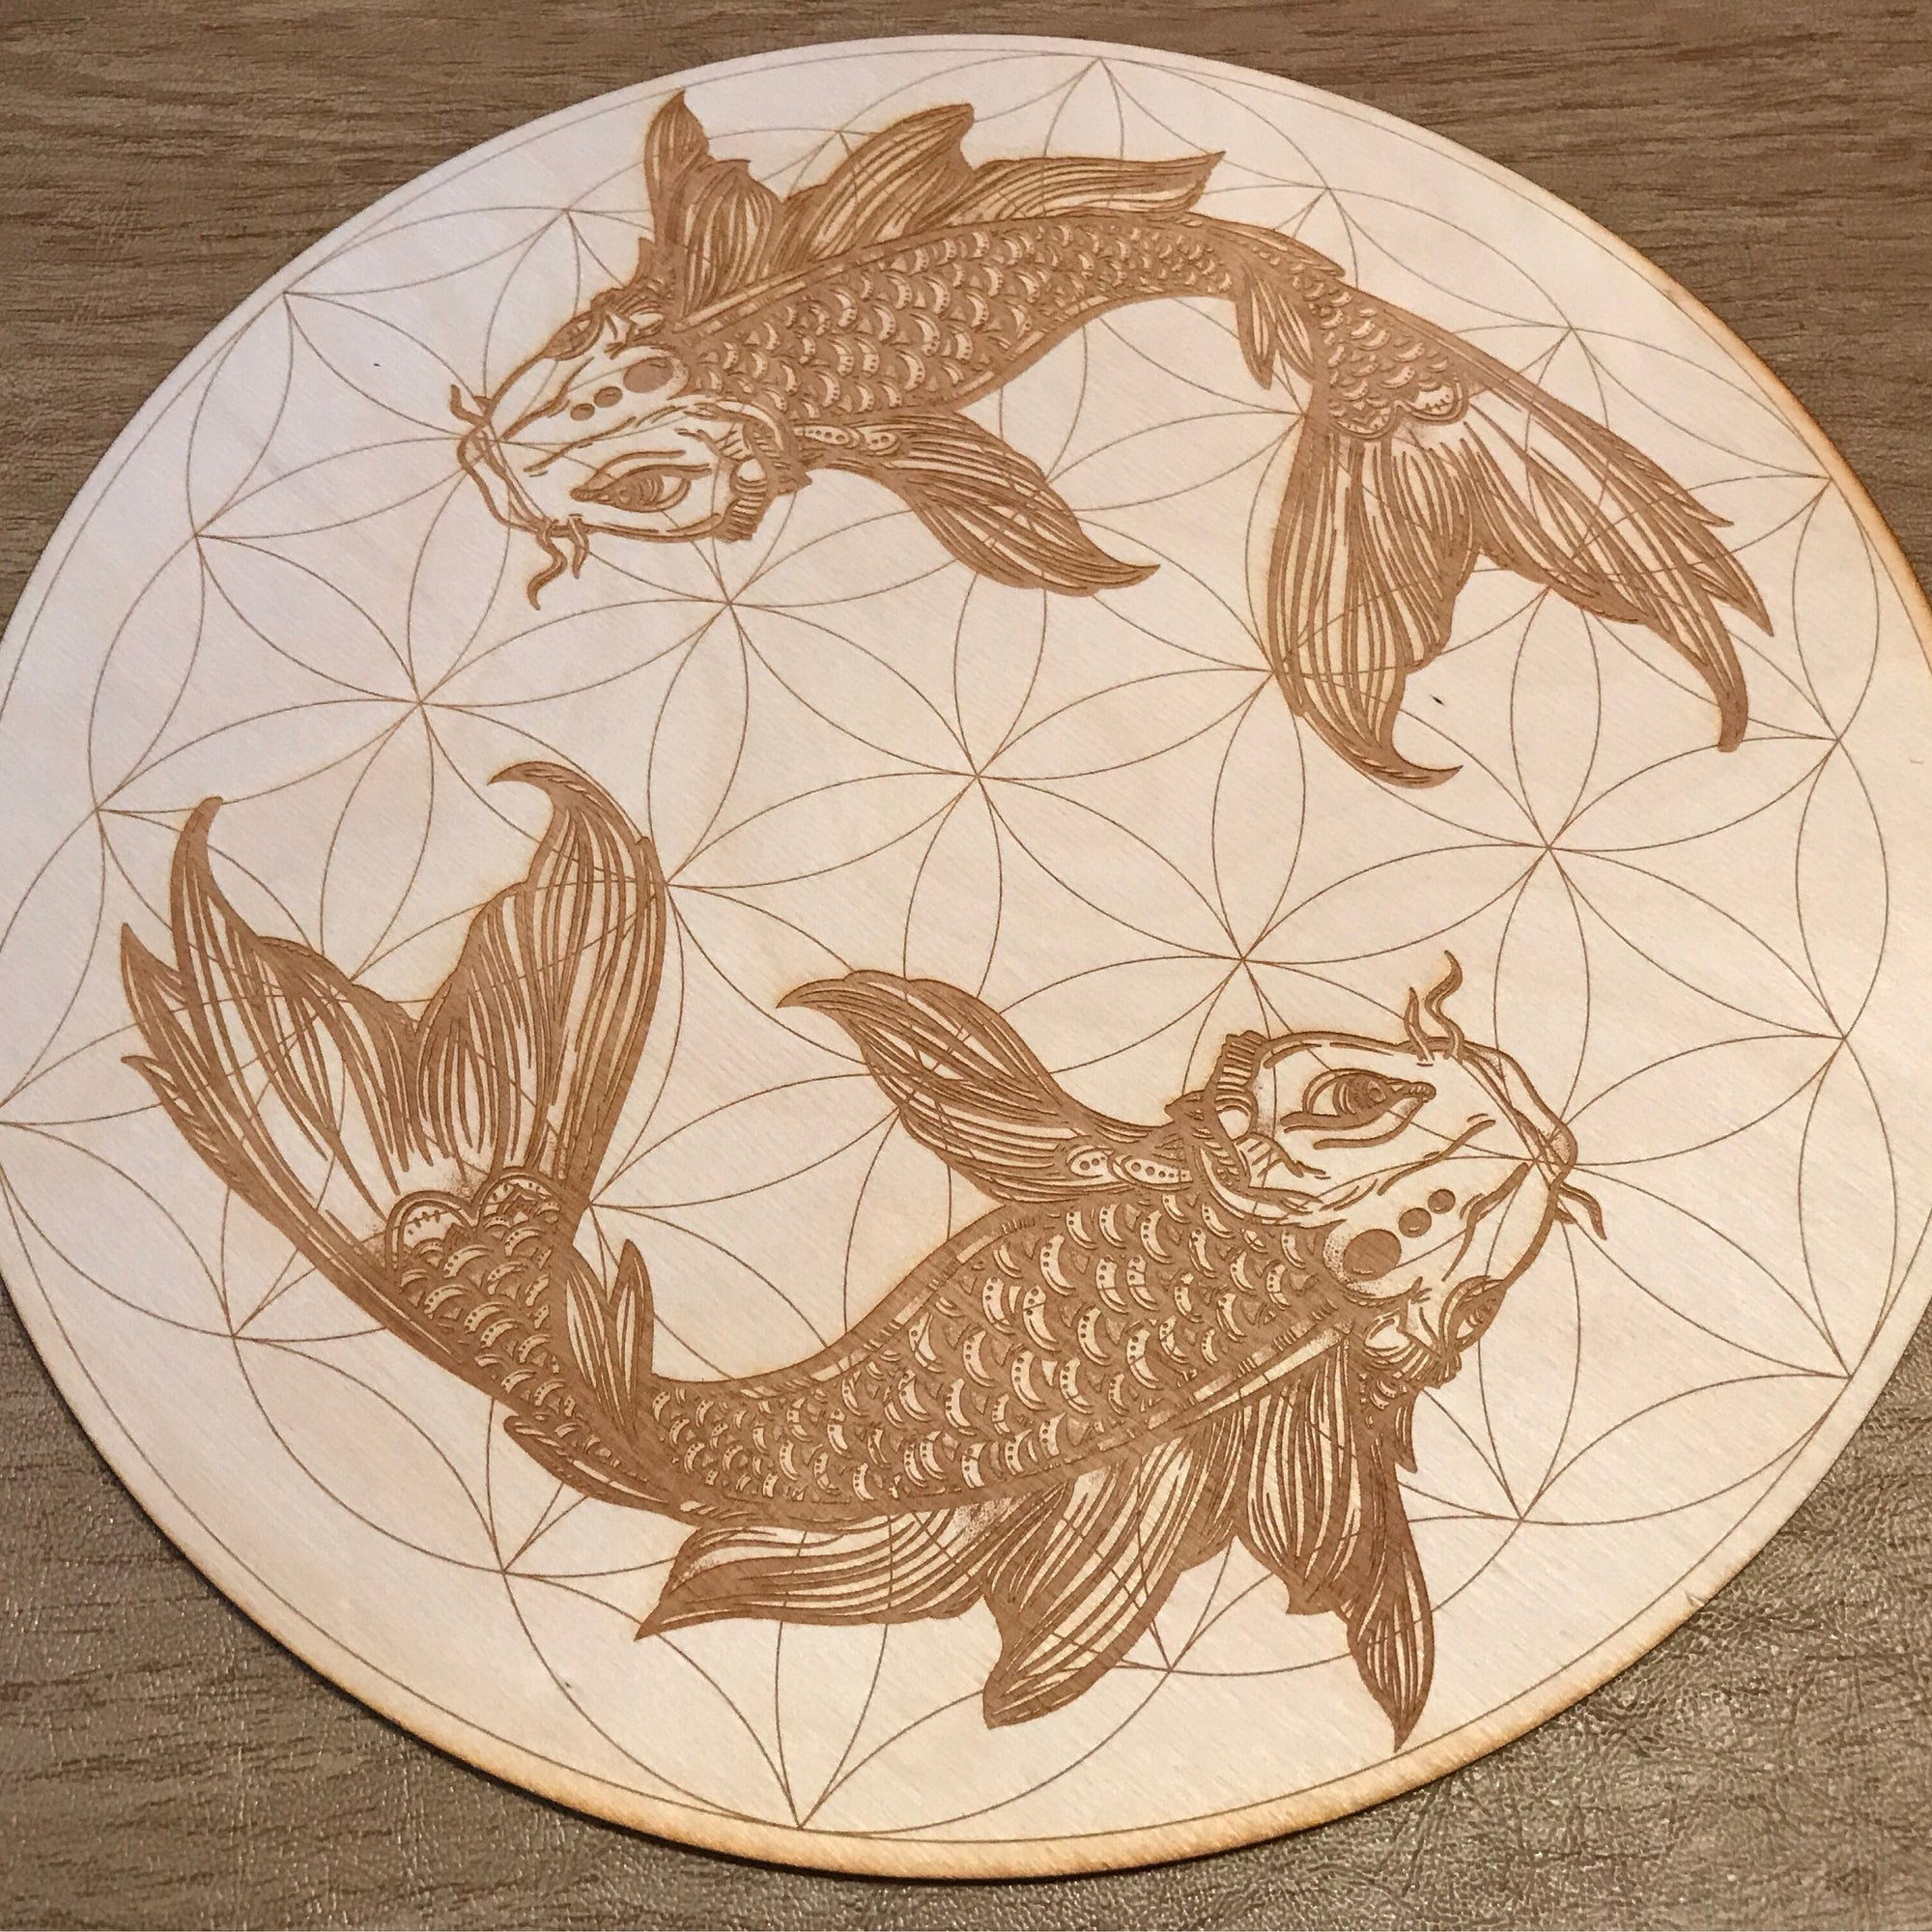 Koi Fish Flower of Life Crystal Grid